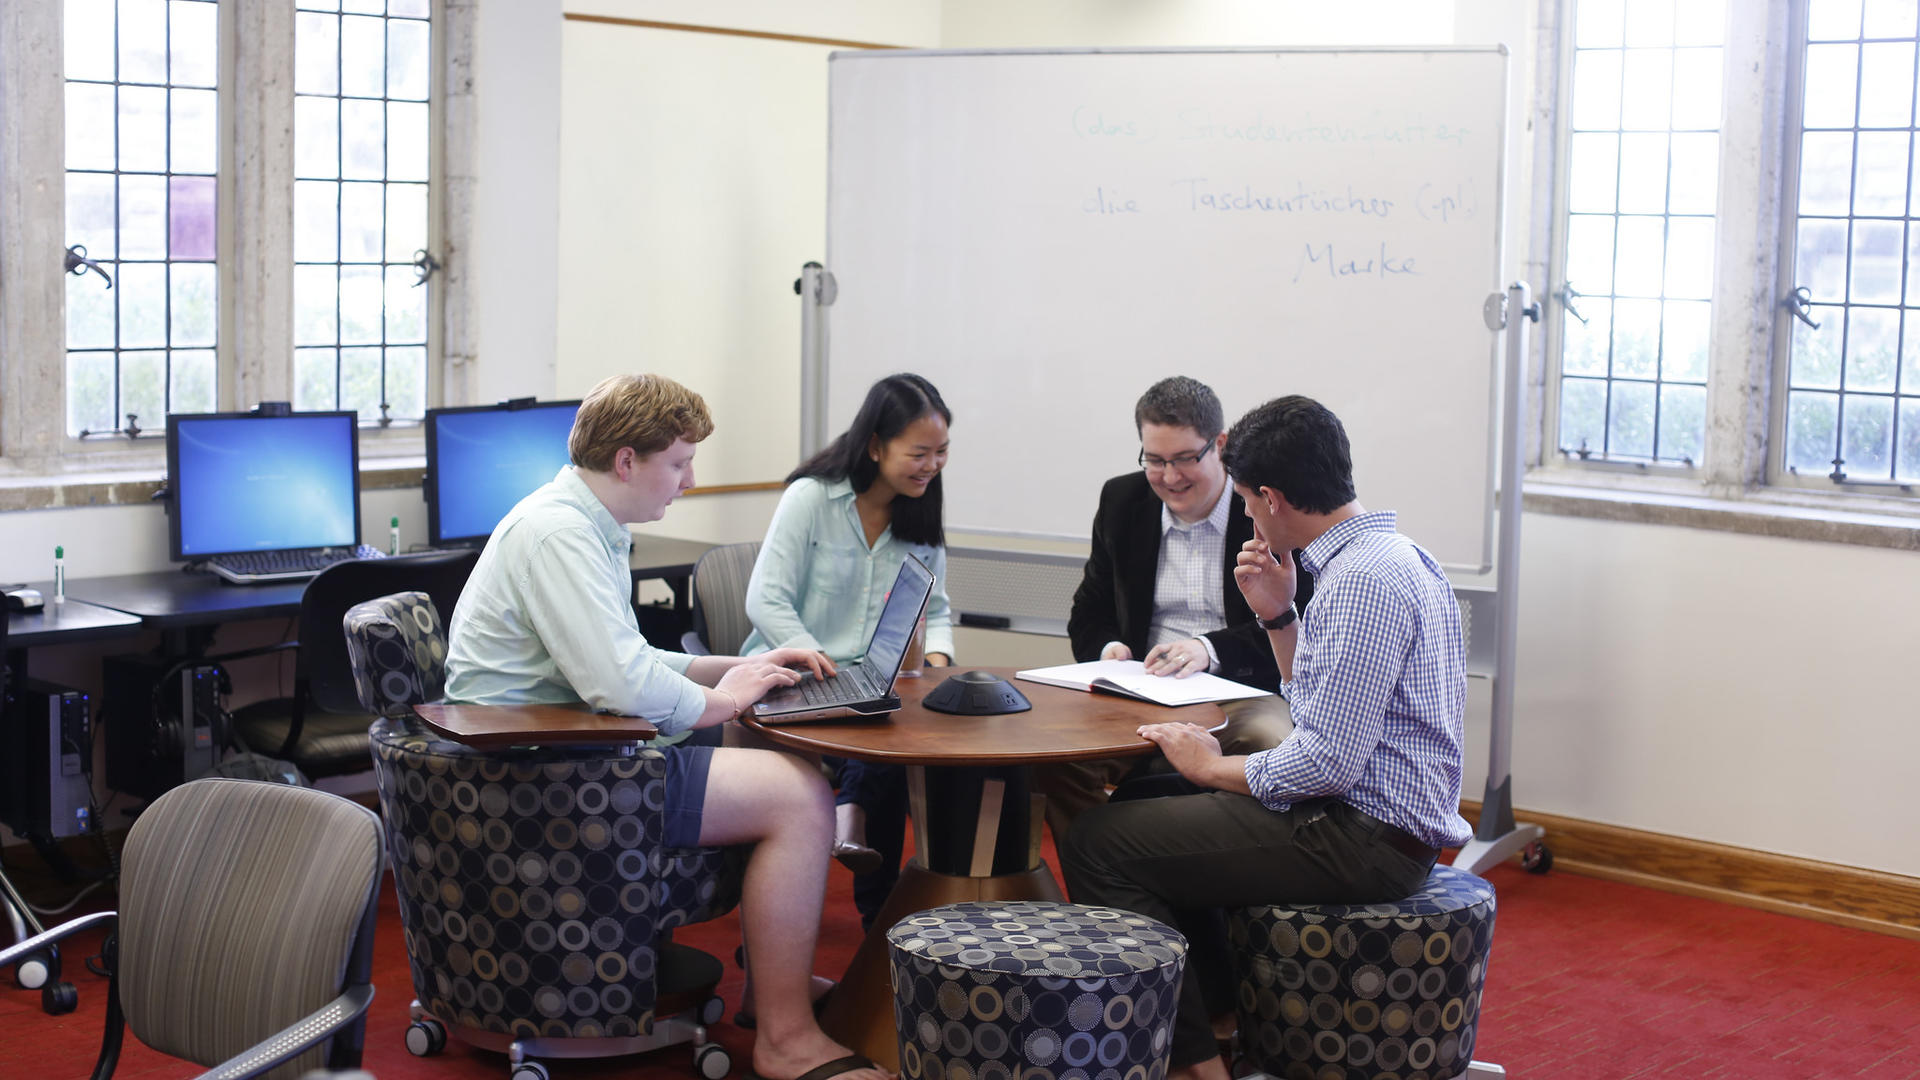 A group of students meet around a small round table.